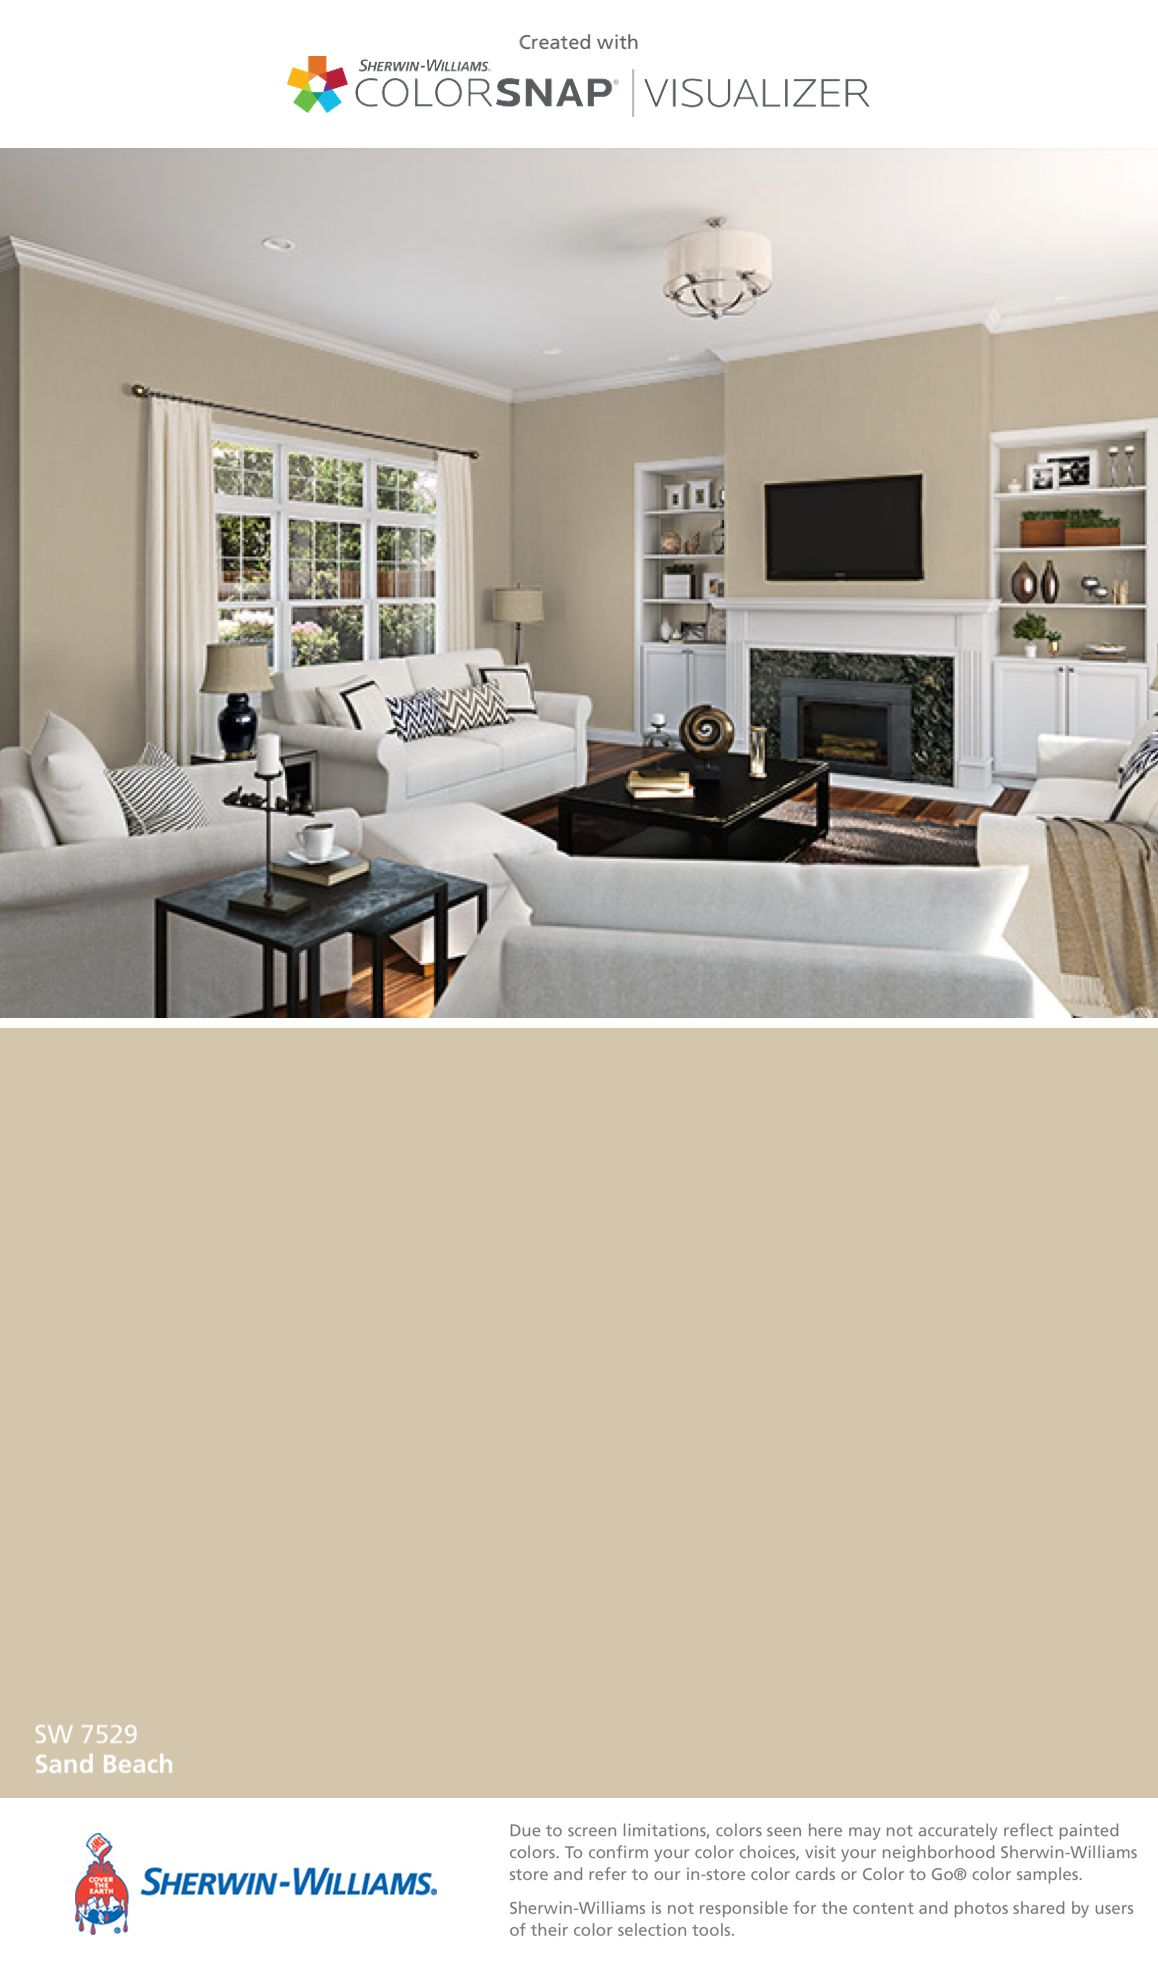 Bedroom First Floor Wall Color Charcoal Blue Sw Paint For All Walls Media Room Bar Cabinet Third Dia